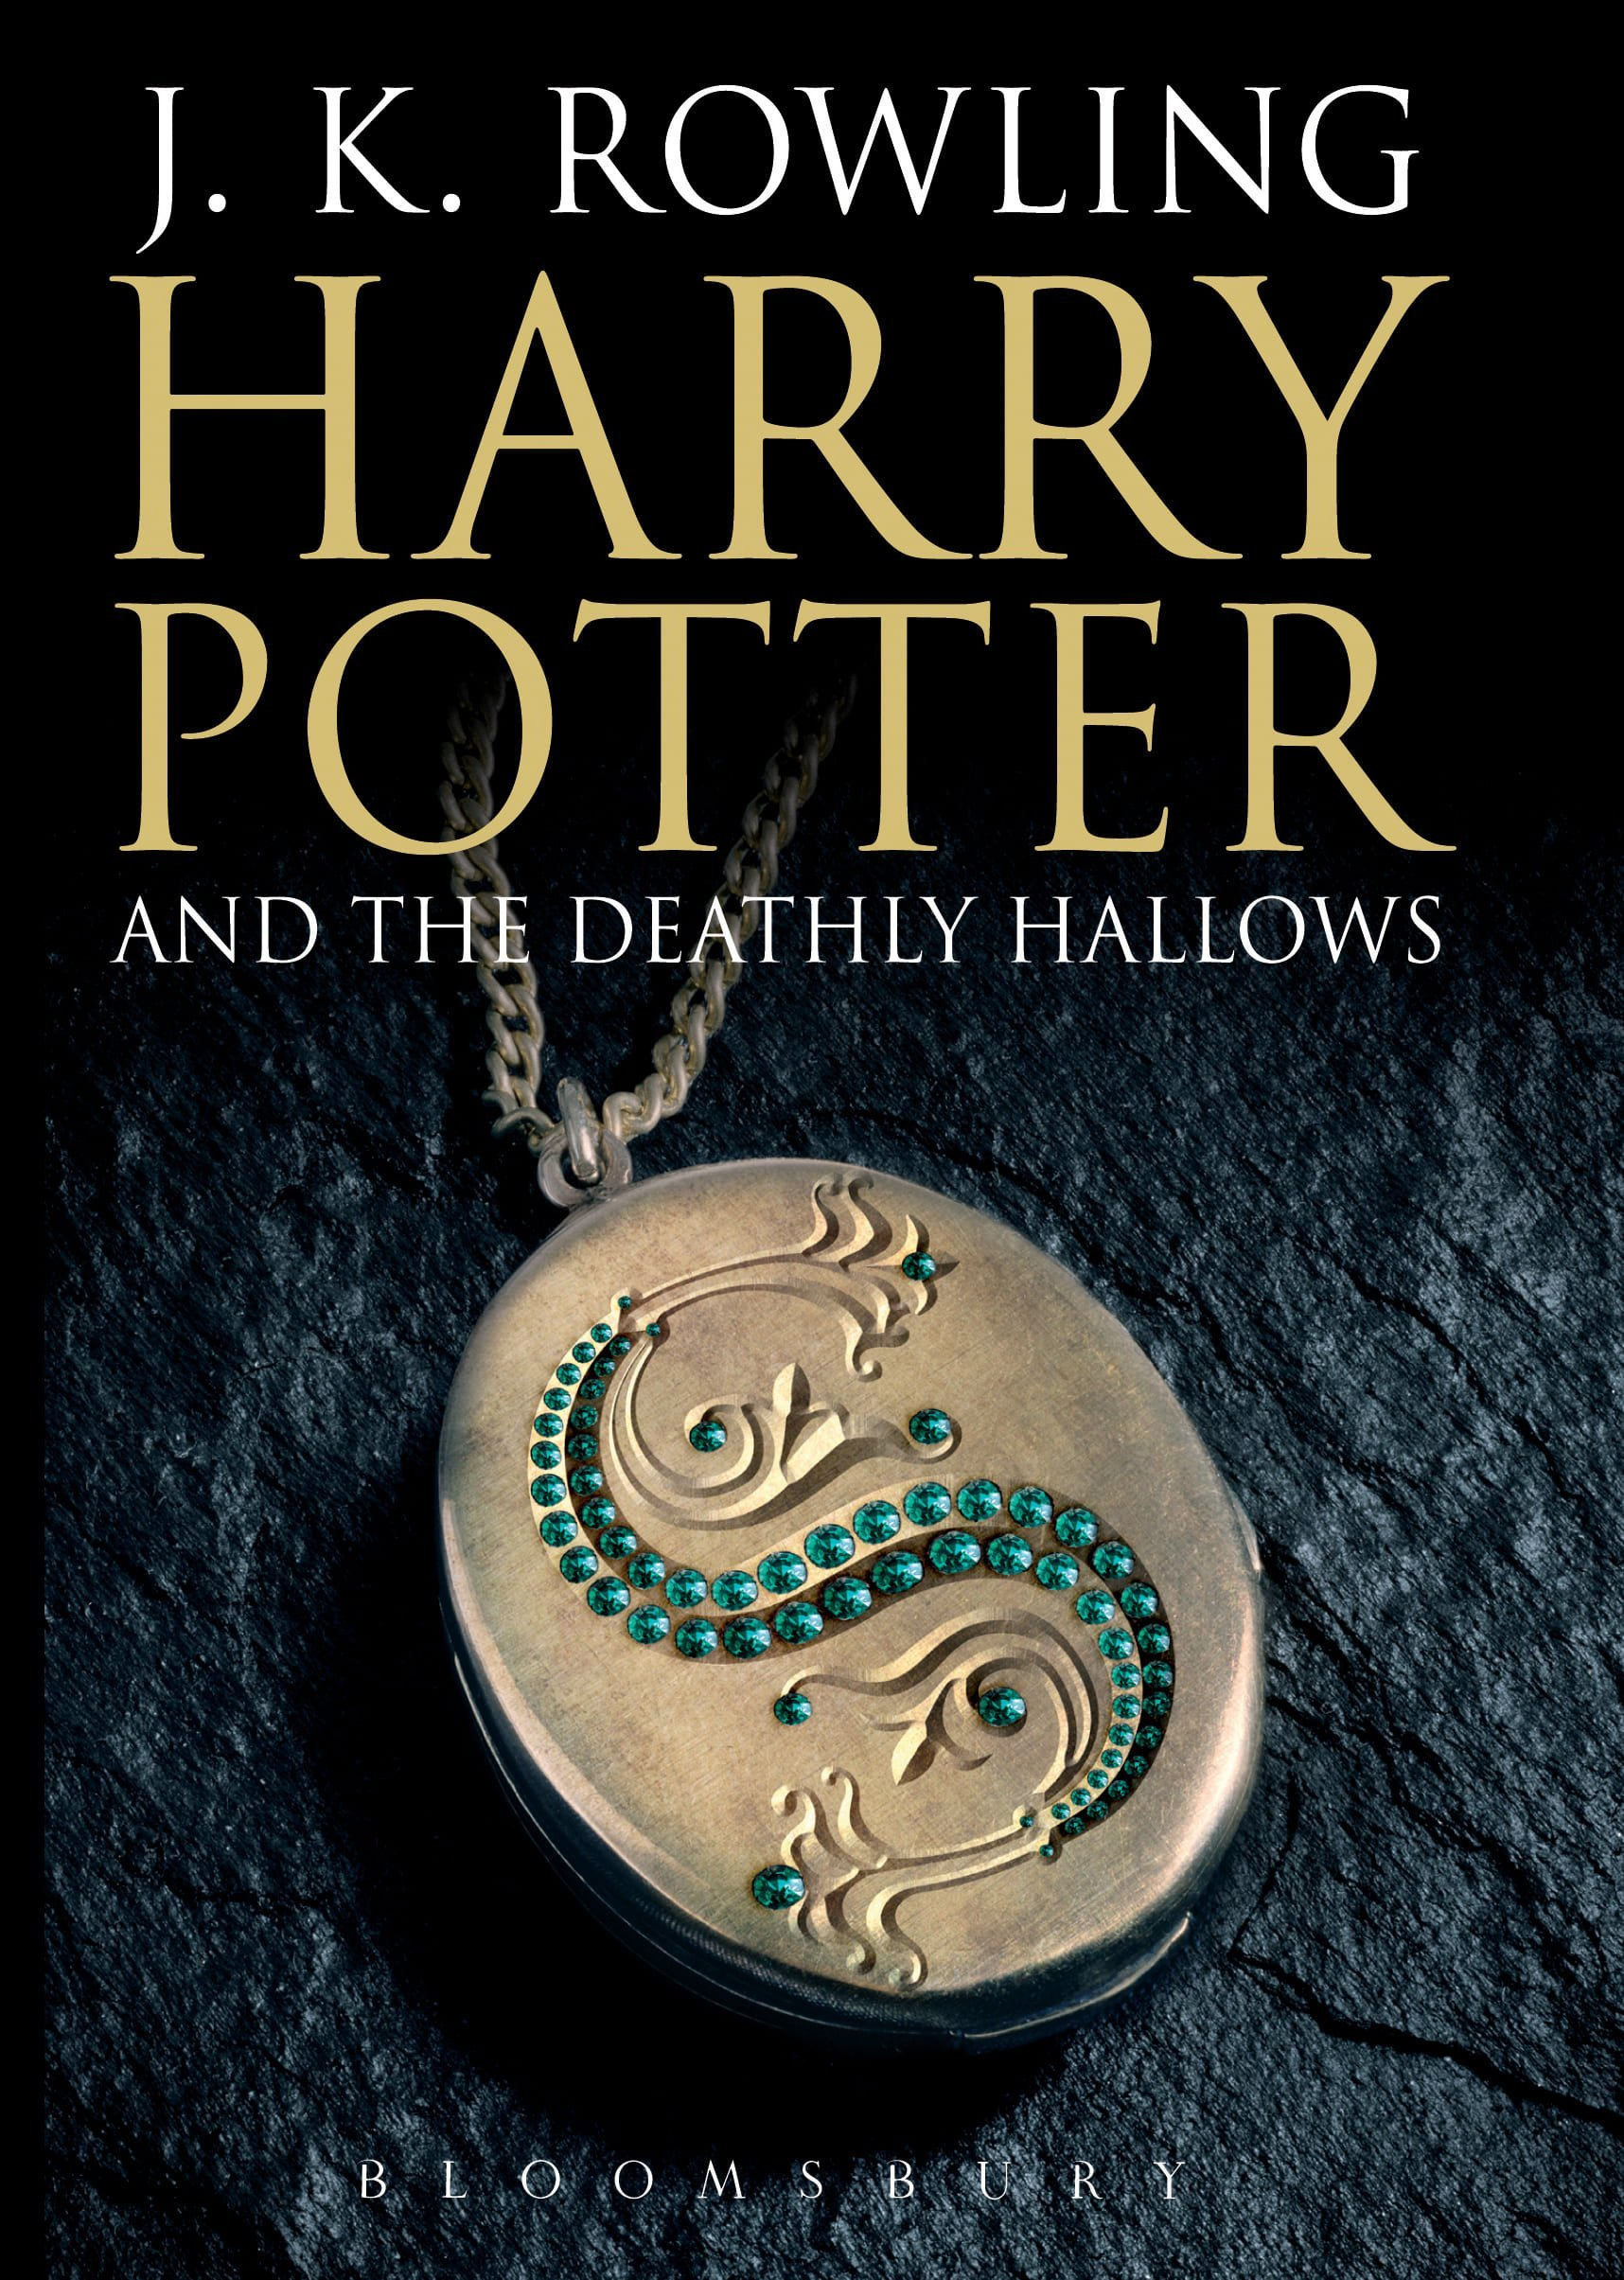 Harry Potter and the Deathly Hallows adult Book Cover